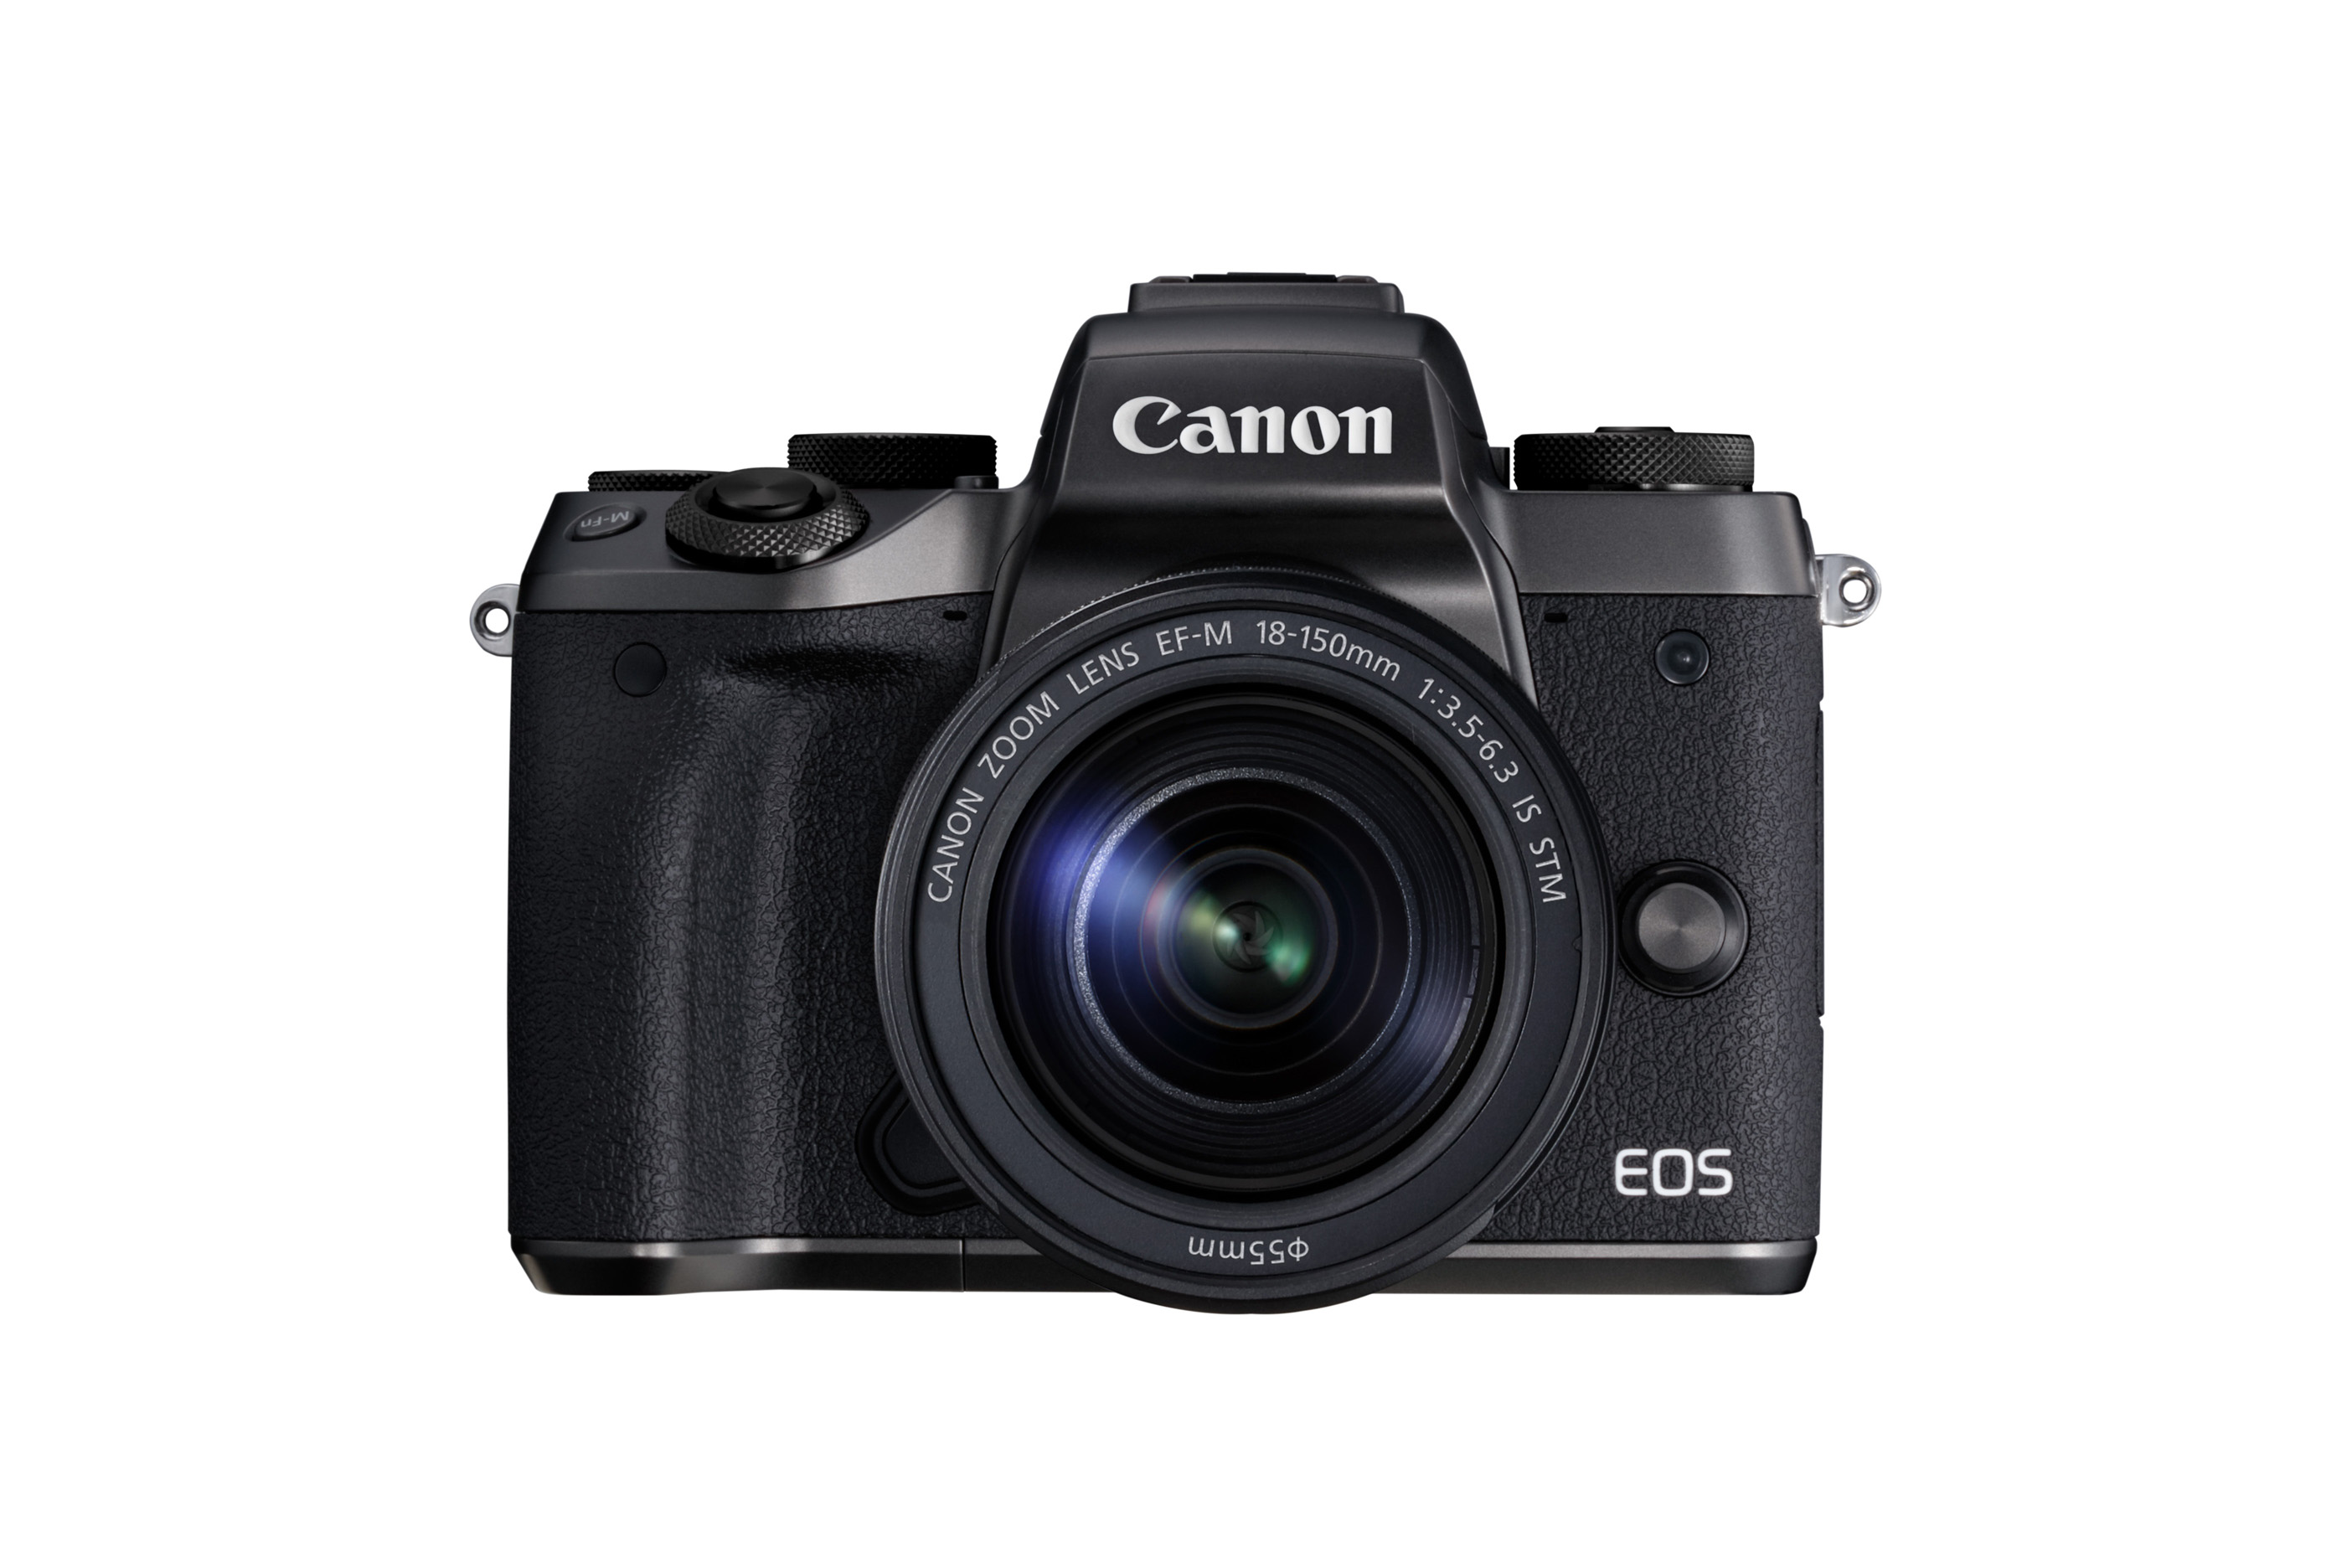 eos m5 ef m18 150is stm 01a - Canon Launches EOS M5 Compact Mirrorless Camera in PH